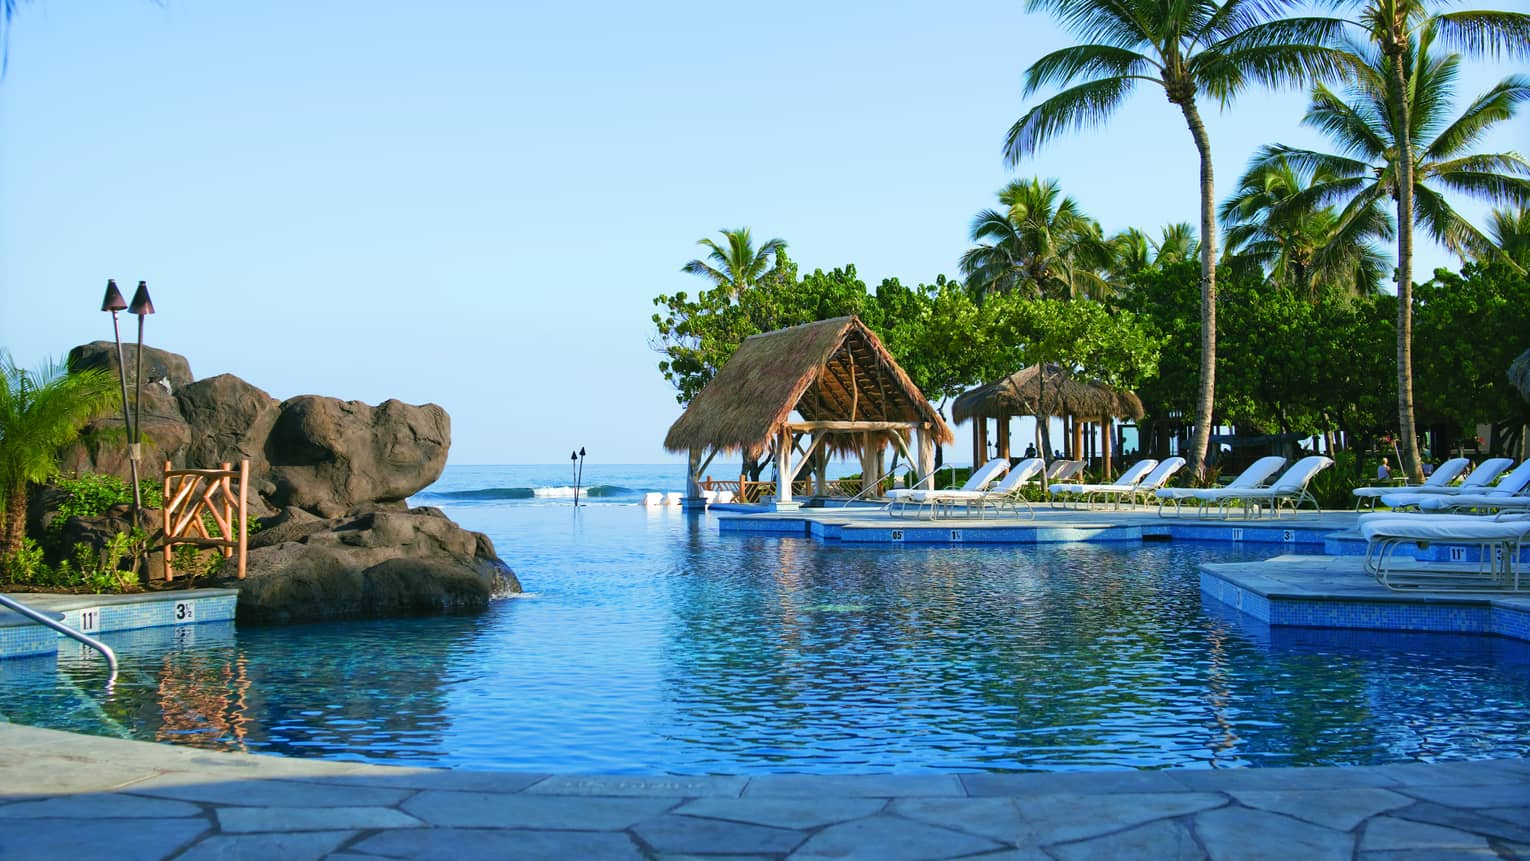 Sea Shell outdoor swimming pool with large boulders, thatched-roof hut